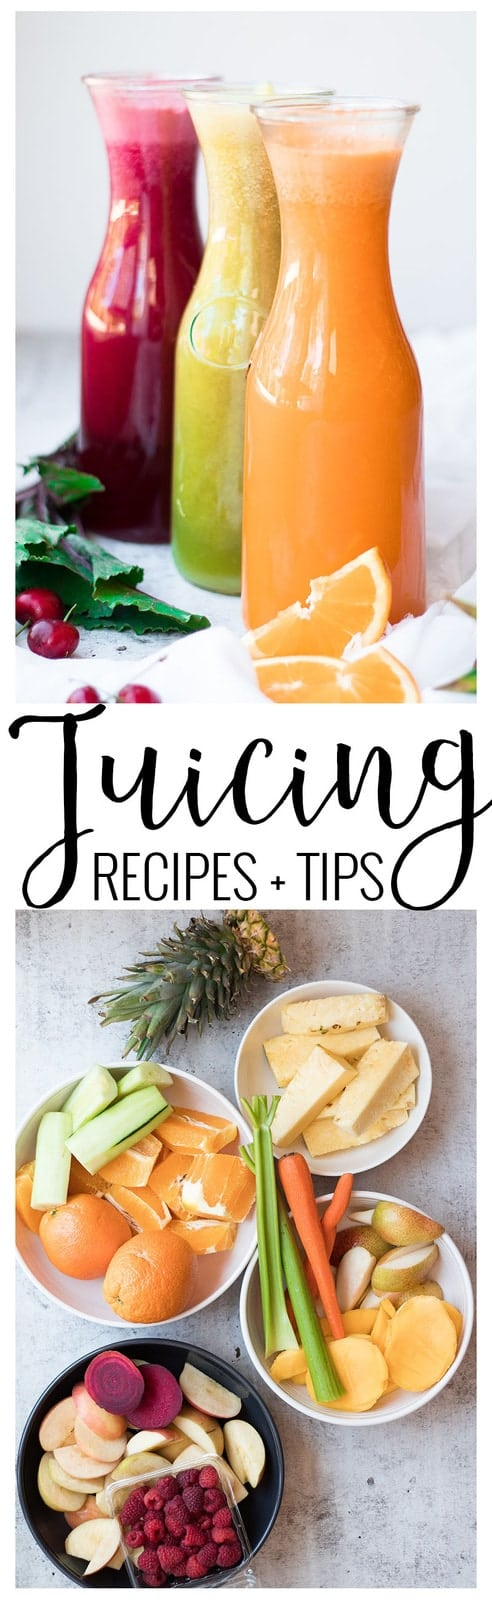 juicing recipes and tips pinterest image